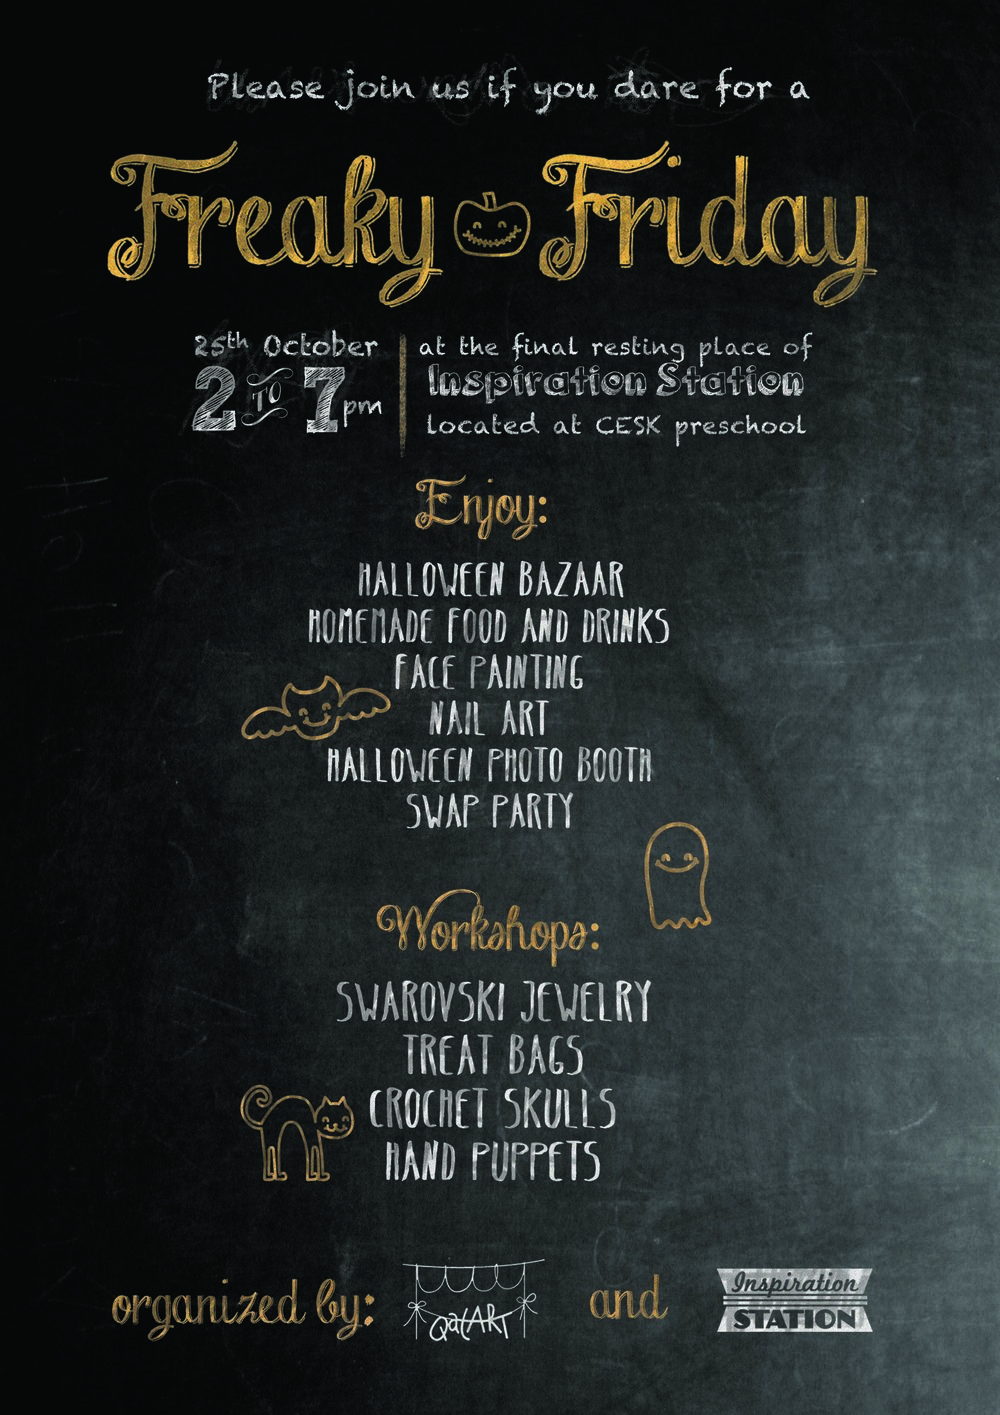 Please come and support our first event - Freaky Friday!    Here is the flyer and if you have any question please contact me on  cherubins3@gmail.com